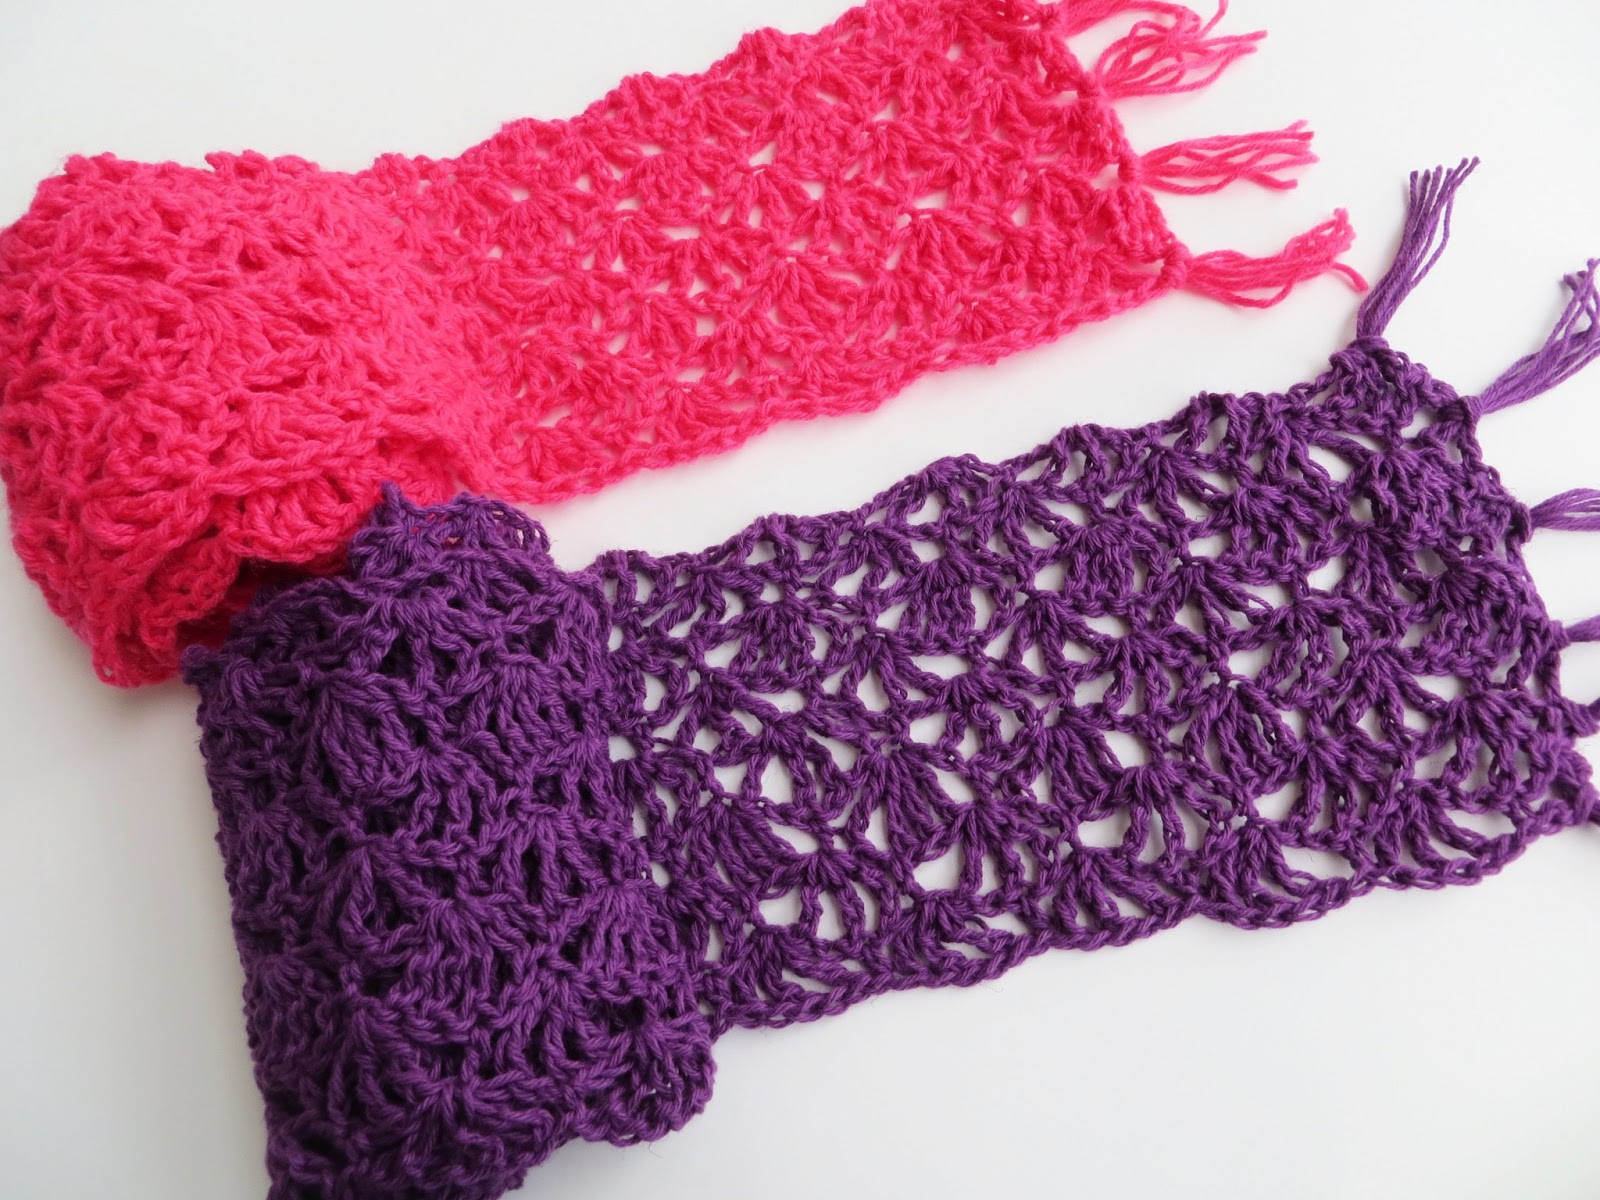 Crochet Patterns Instructions : Crochet Dreamz: Alana Lacy Scarf, Free Crochet Pattern